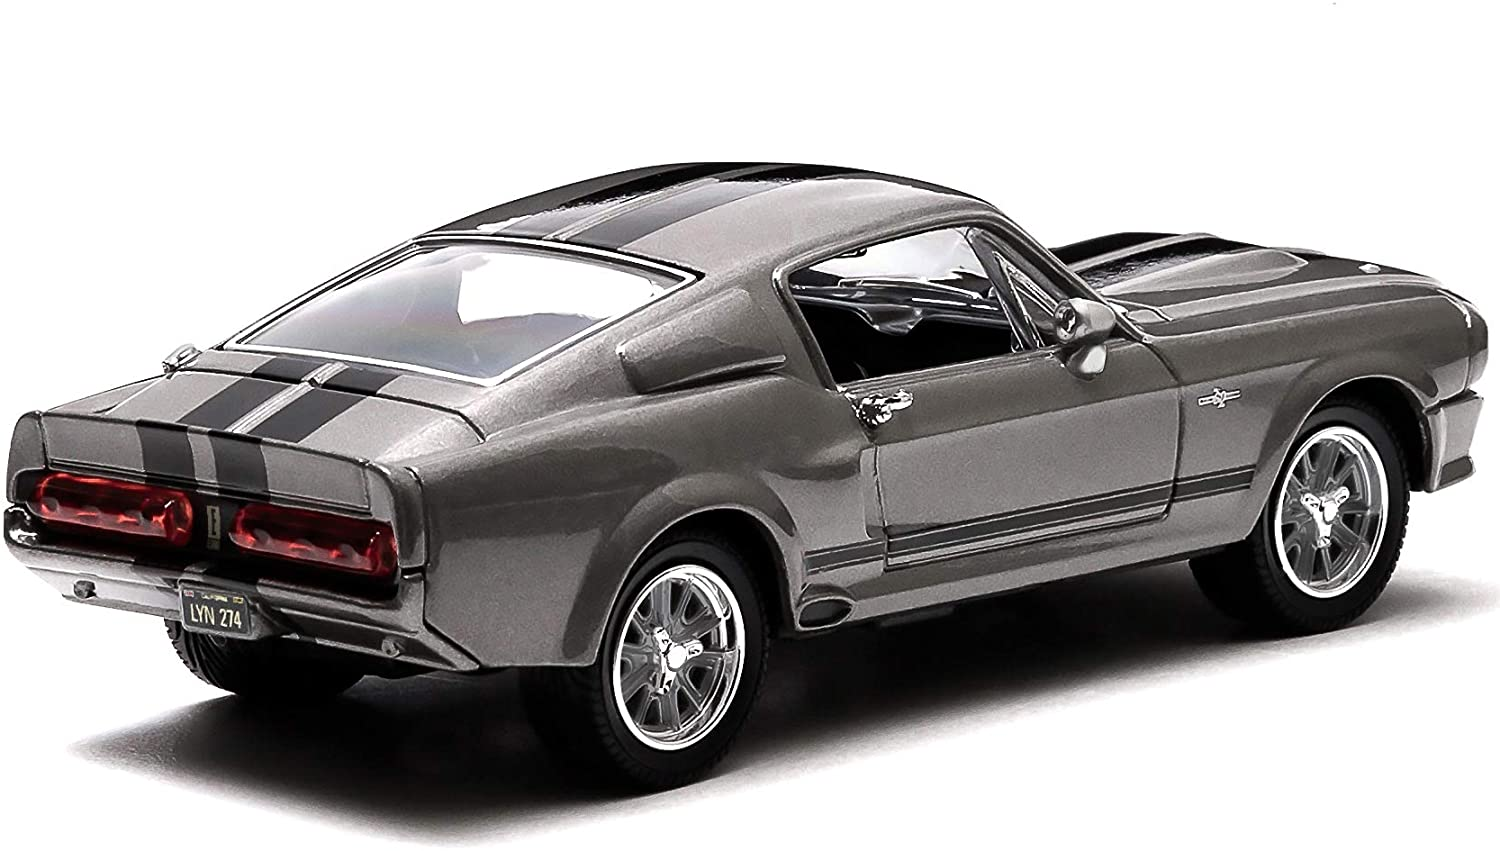 FORD MUSTANG Shelby GT500 Eleanor 1967 60 Secondes Chrono GREENLIGHT 1//18